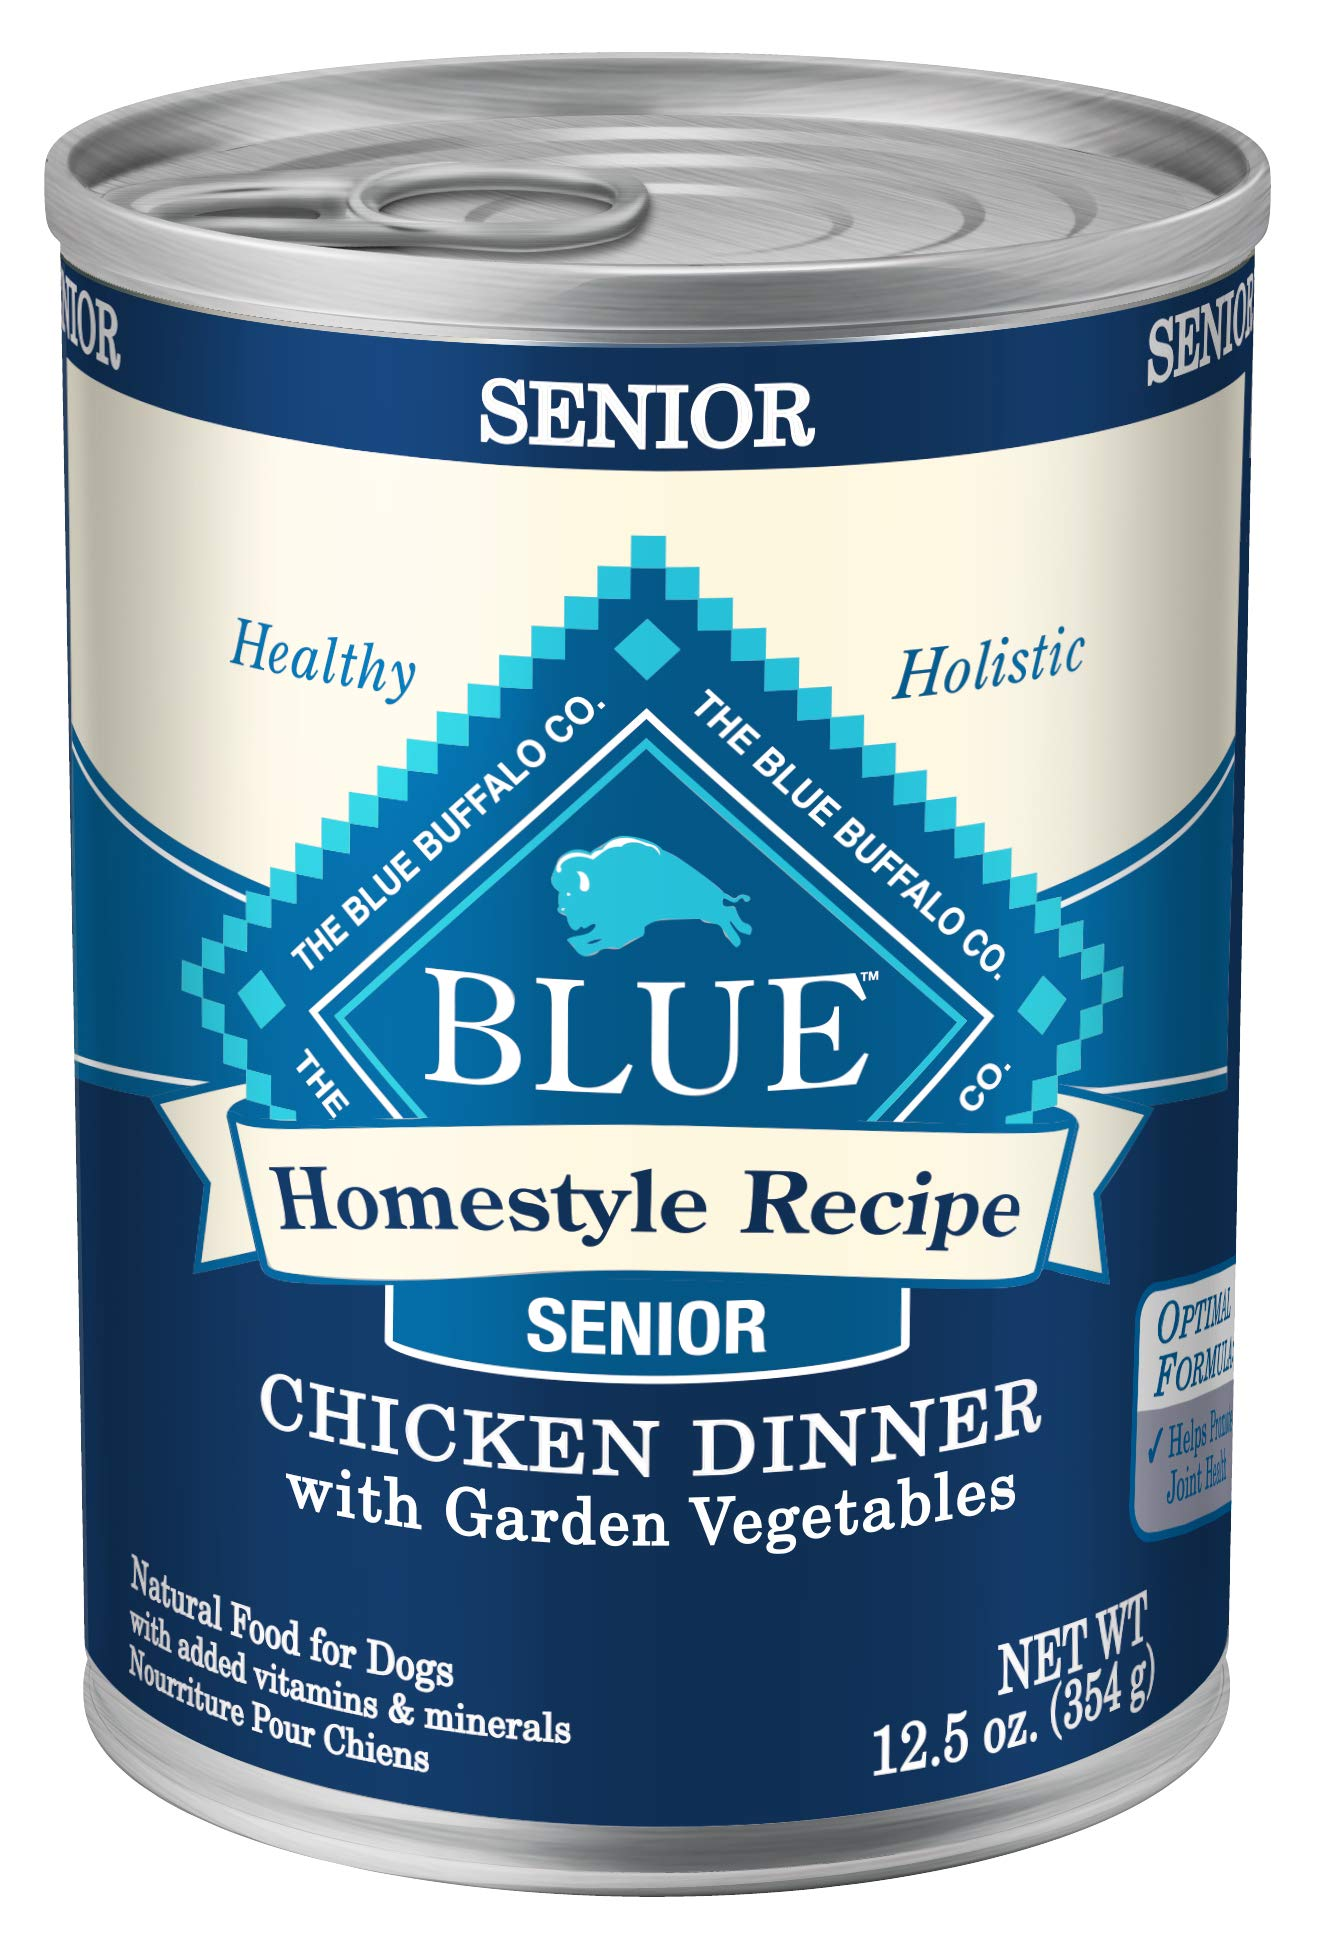 Blue Buffalo Homestyle Recipe Natural Senior Wet Dog Food, Chicken 12.5-oz can (Pack of 12) by Blue Buffalo